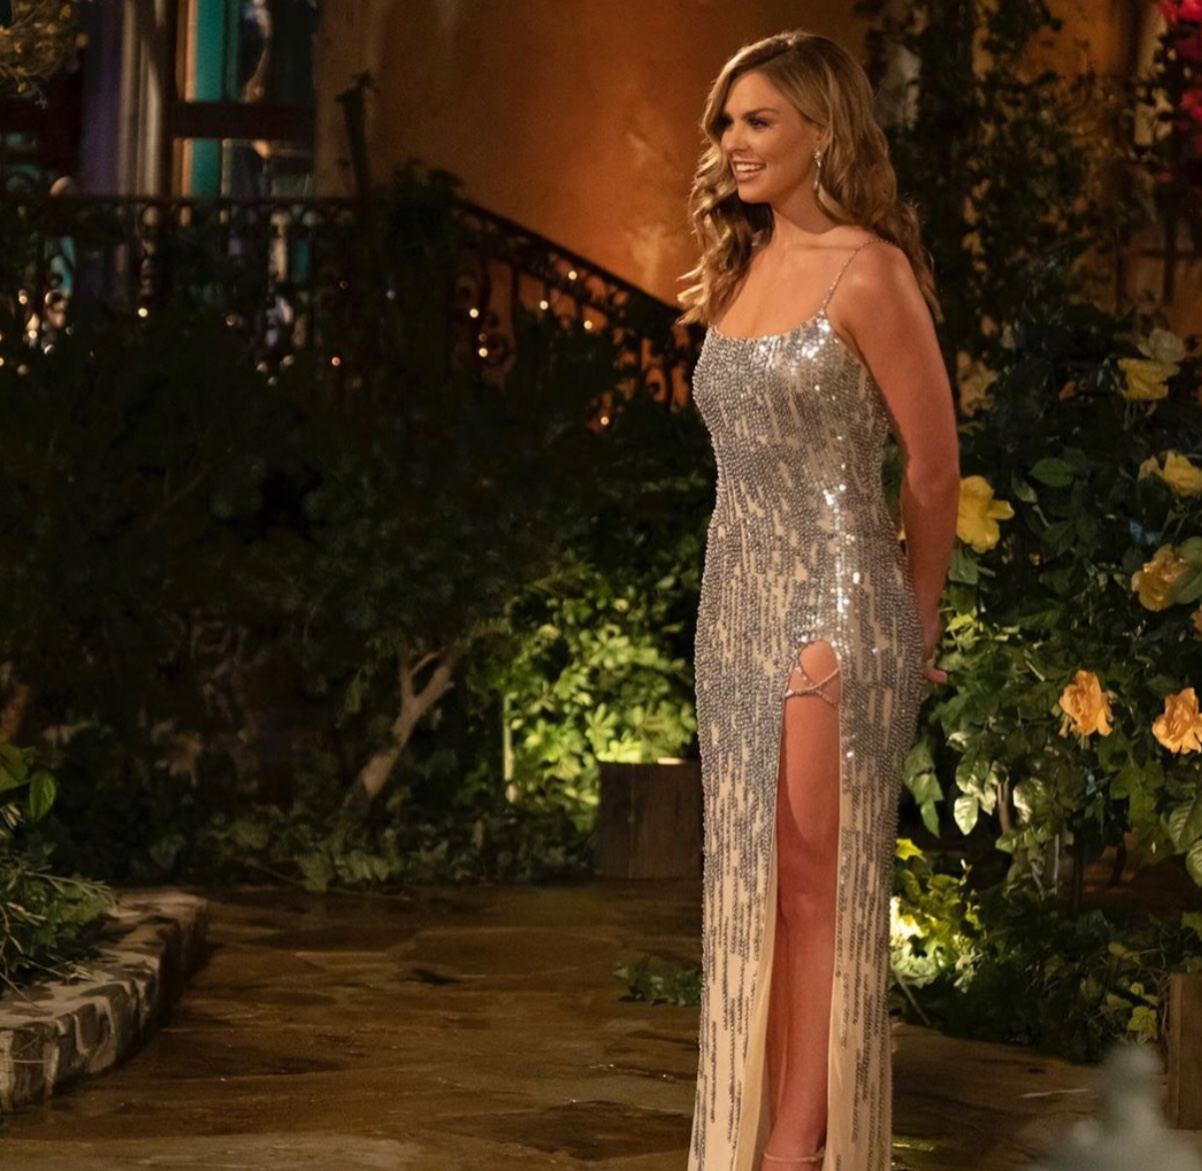 The 24 year old star of ABC's The Bachelorette waits for the contestants to introduce themselves and make their first impression of the season.  Fair Use: Instagram